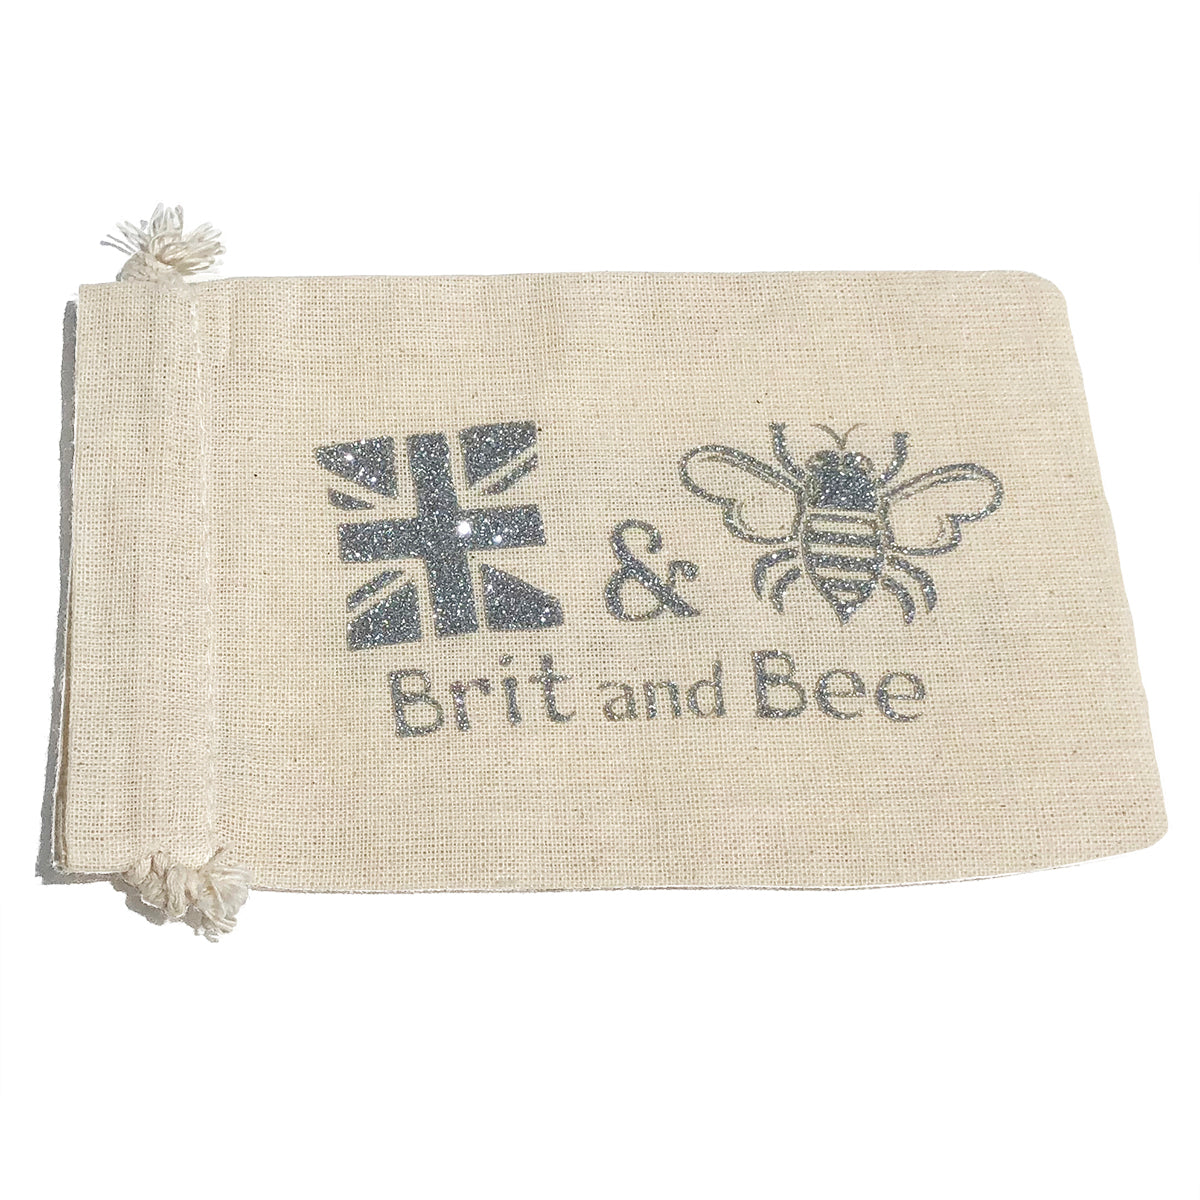 Brit and Bee Sorority Car Coasters - Sigma Kappa